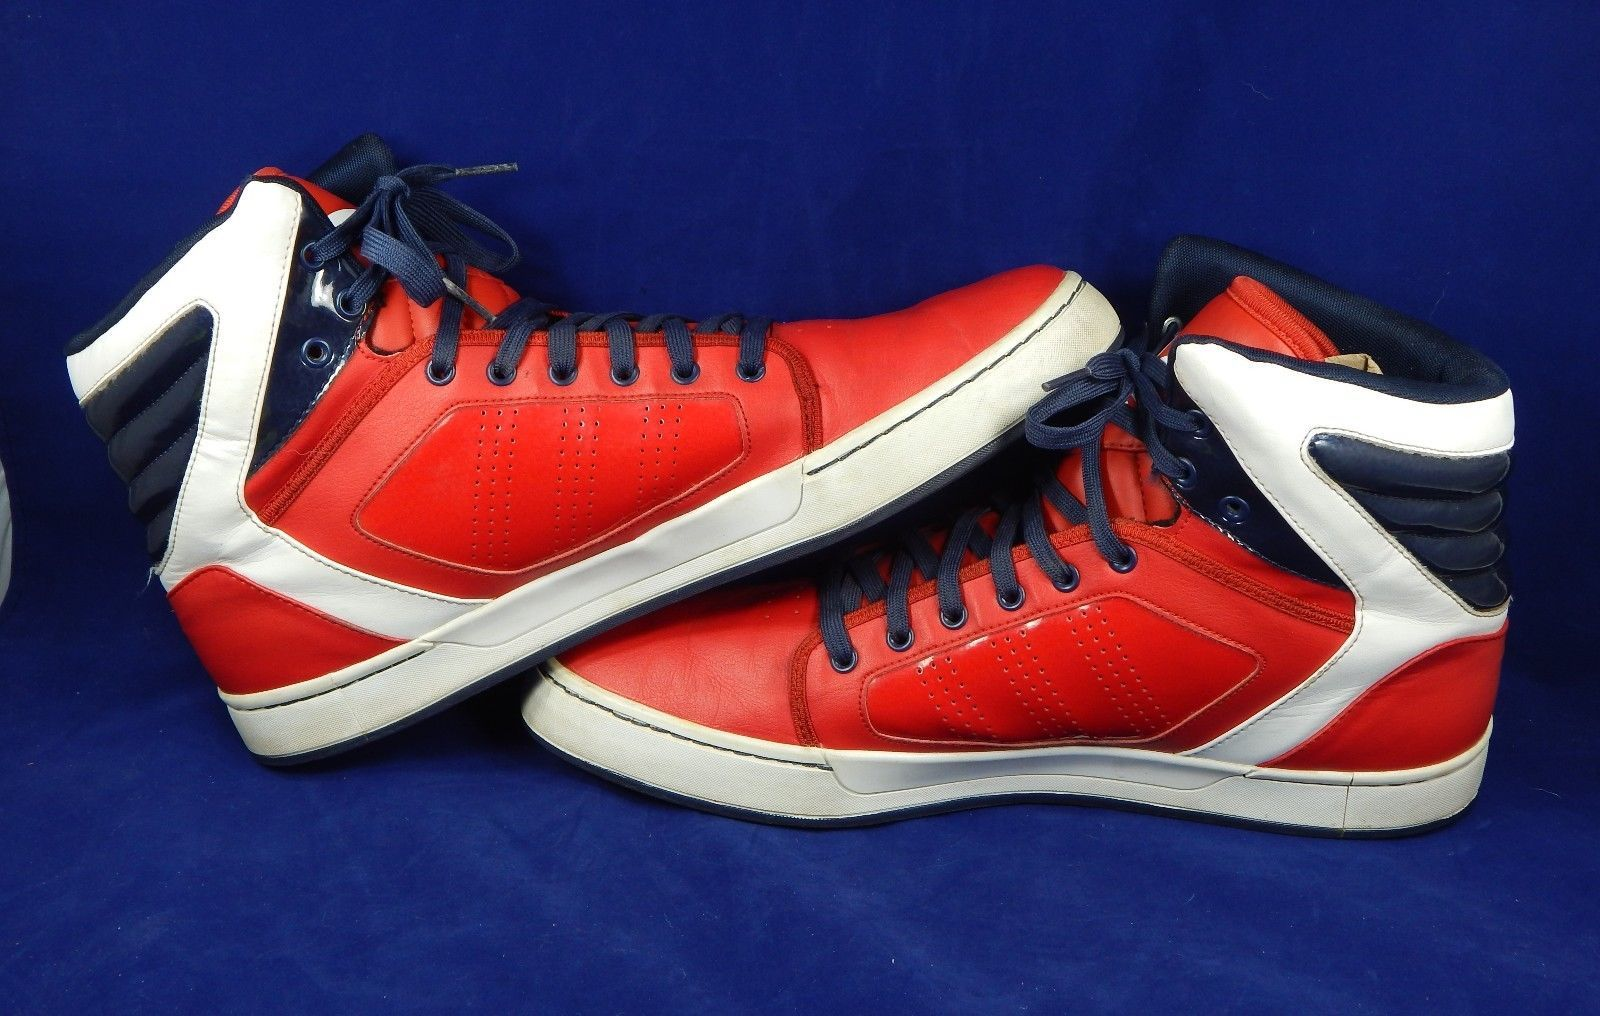 08d269a4d8f Adidas G56624 Originals ADI High EXT Basketball Shoes Red White Blue Size  US 13